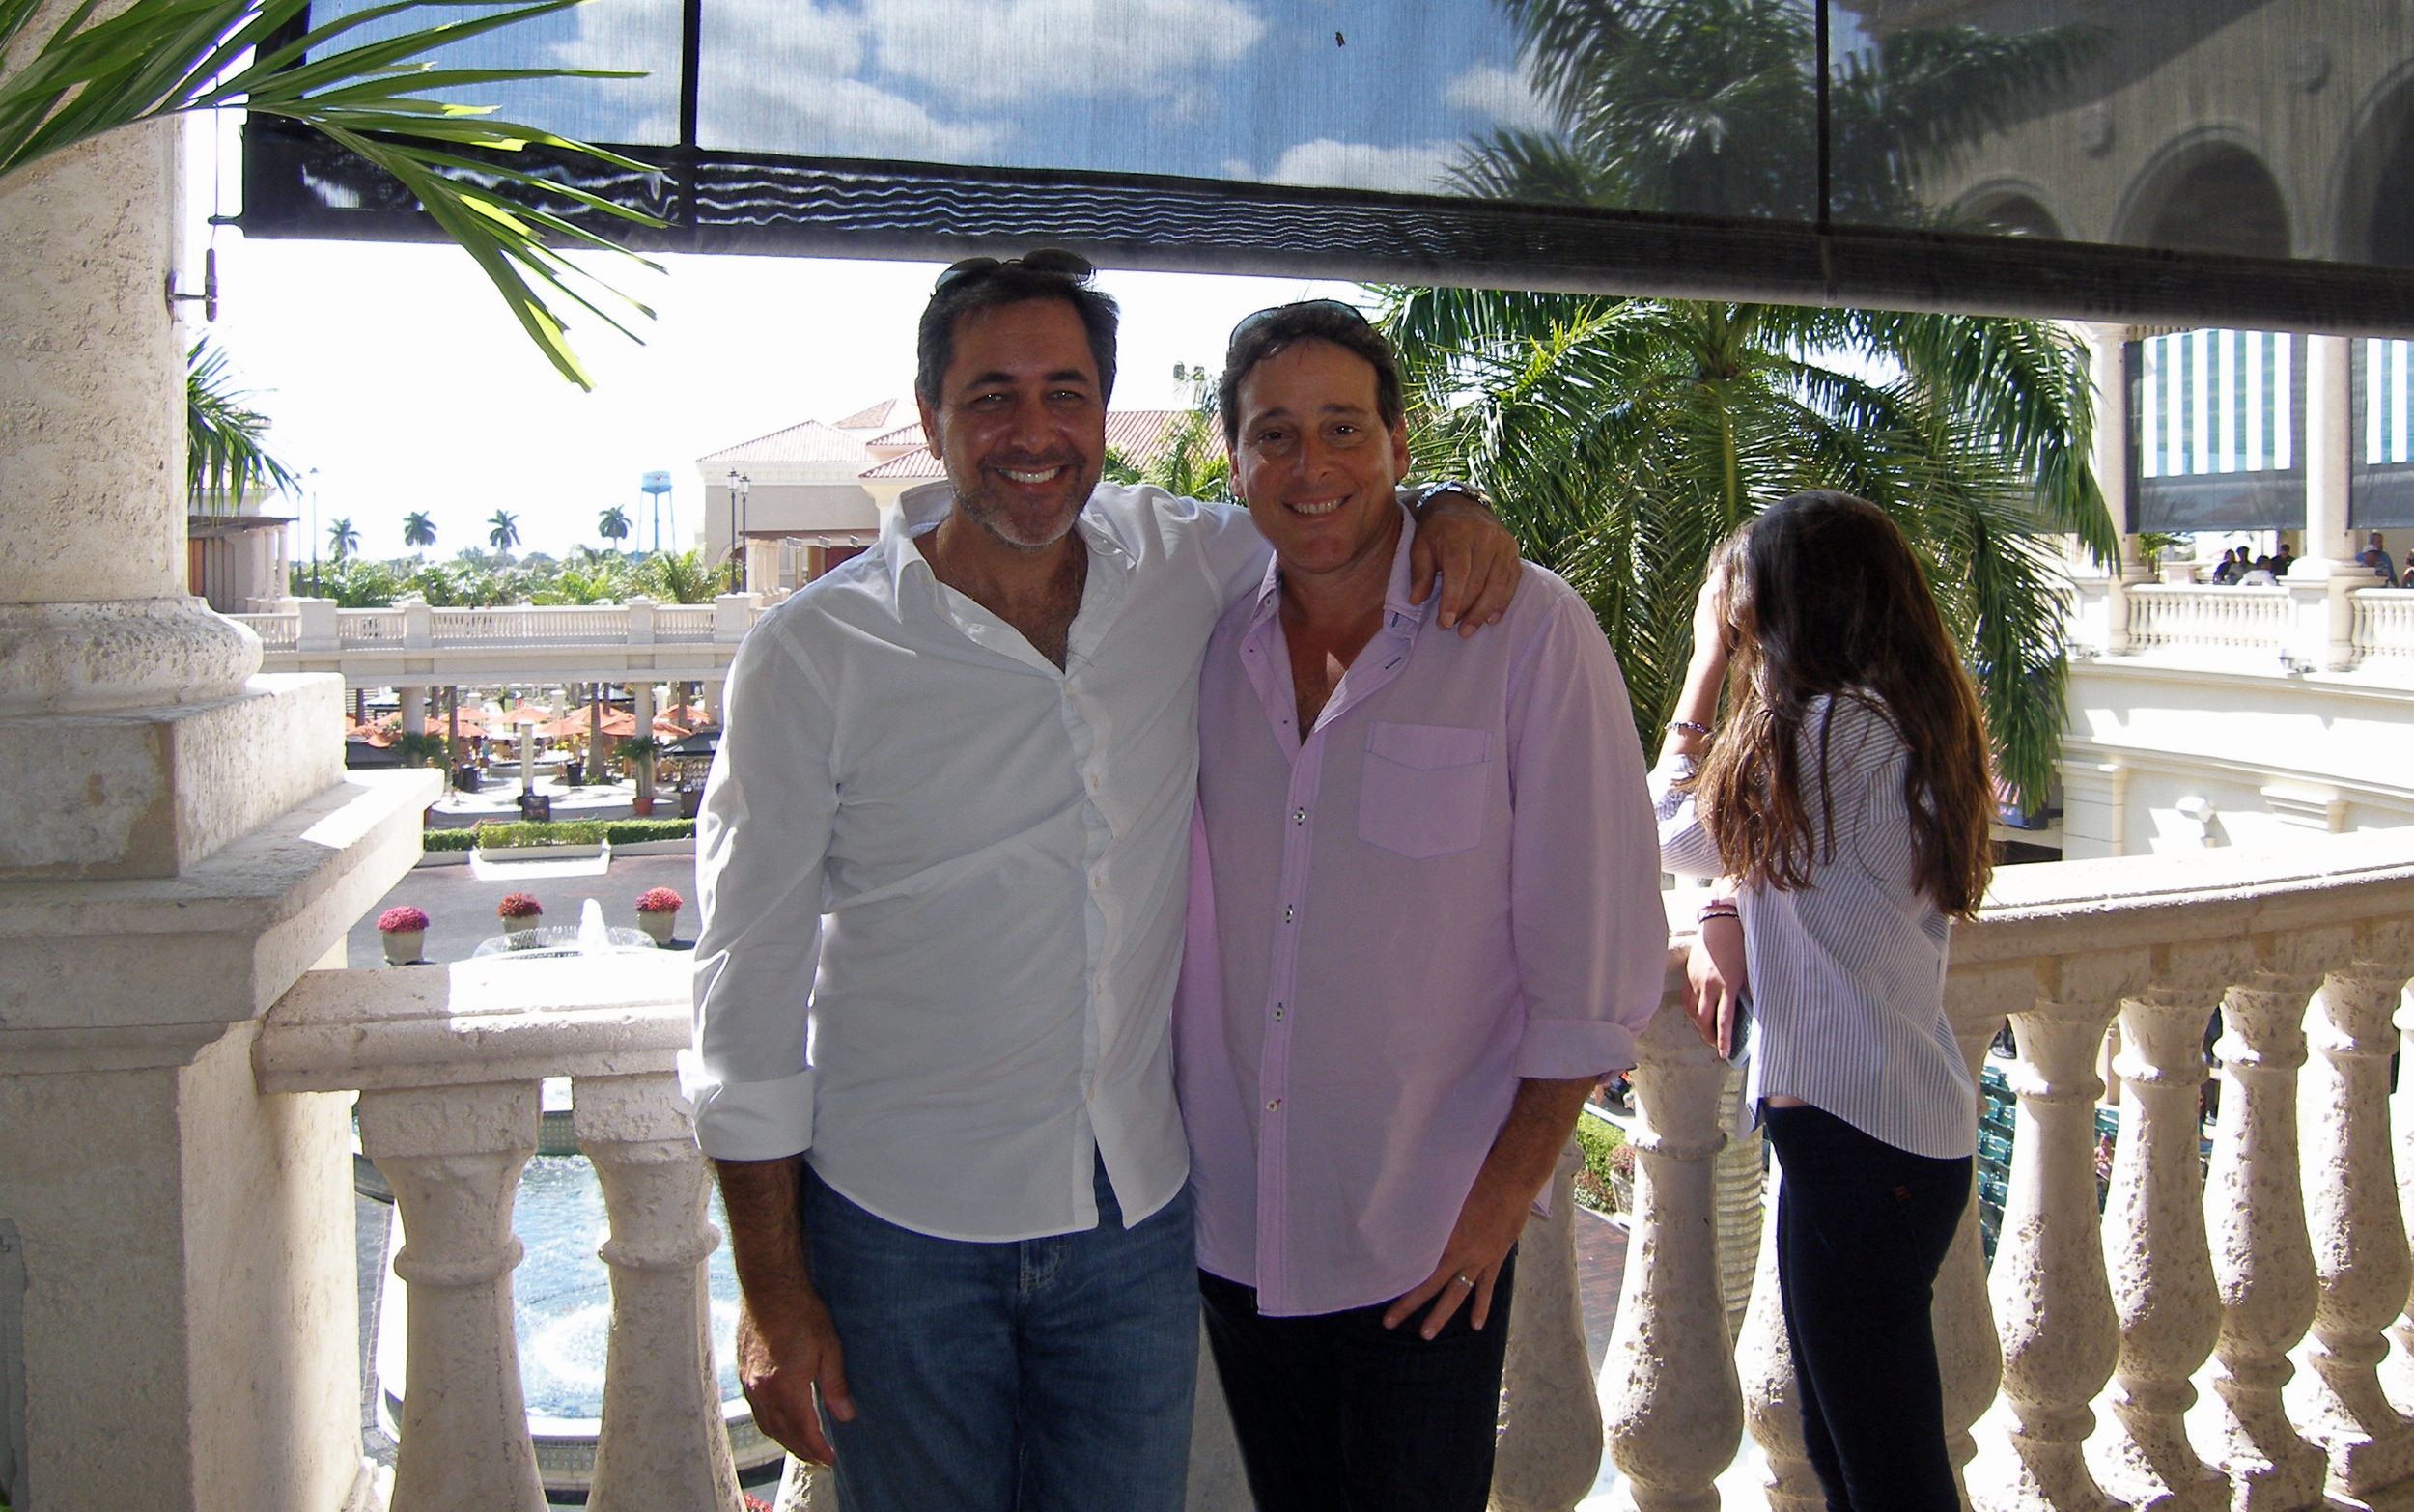 With high school buddy David Garfinkle, producer of Naked & Afraid on Discovery Channel and Blind Date